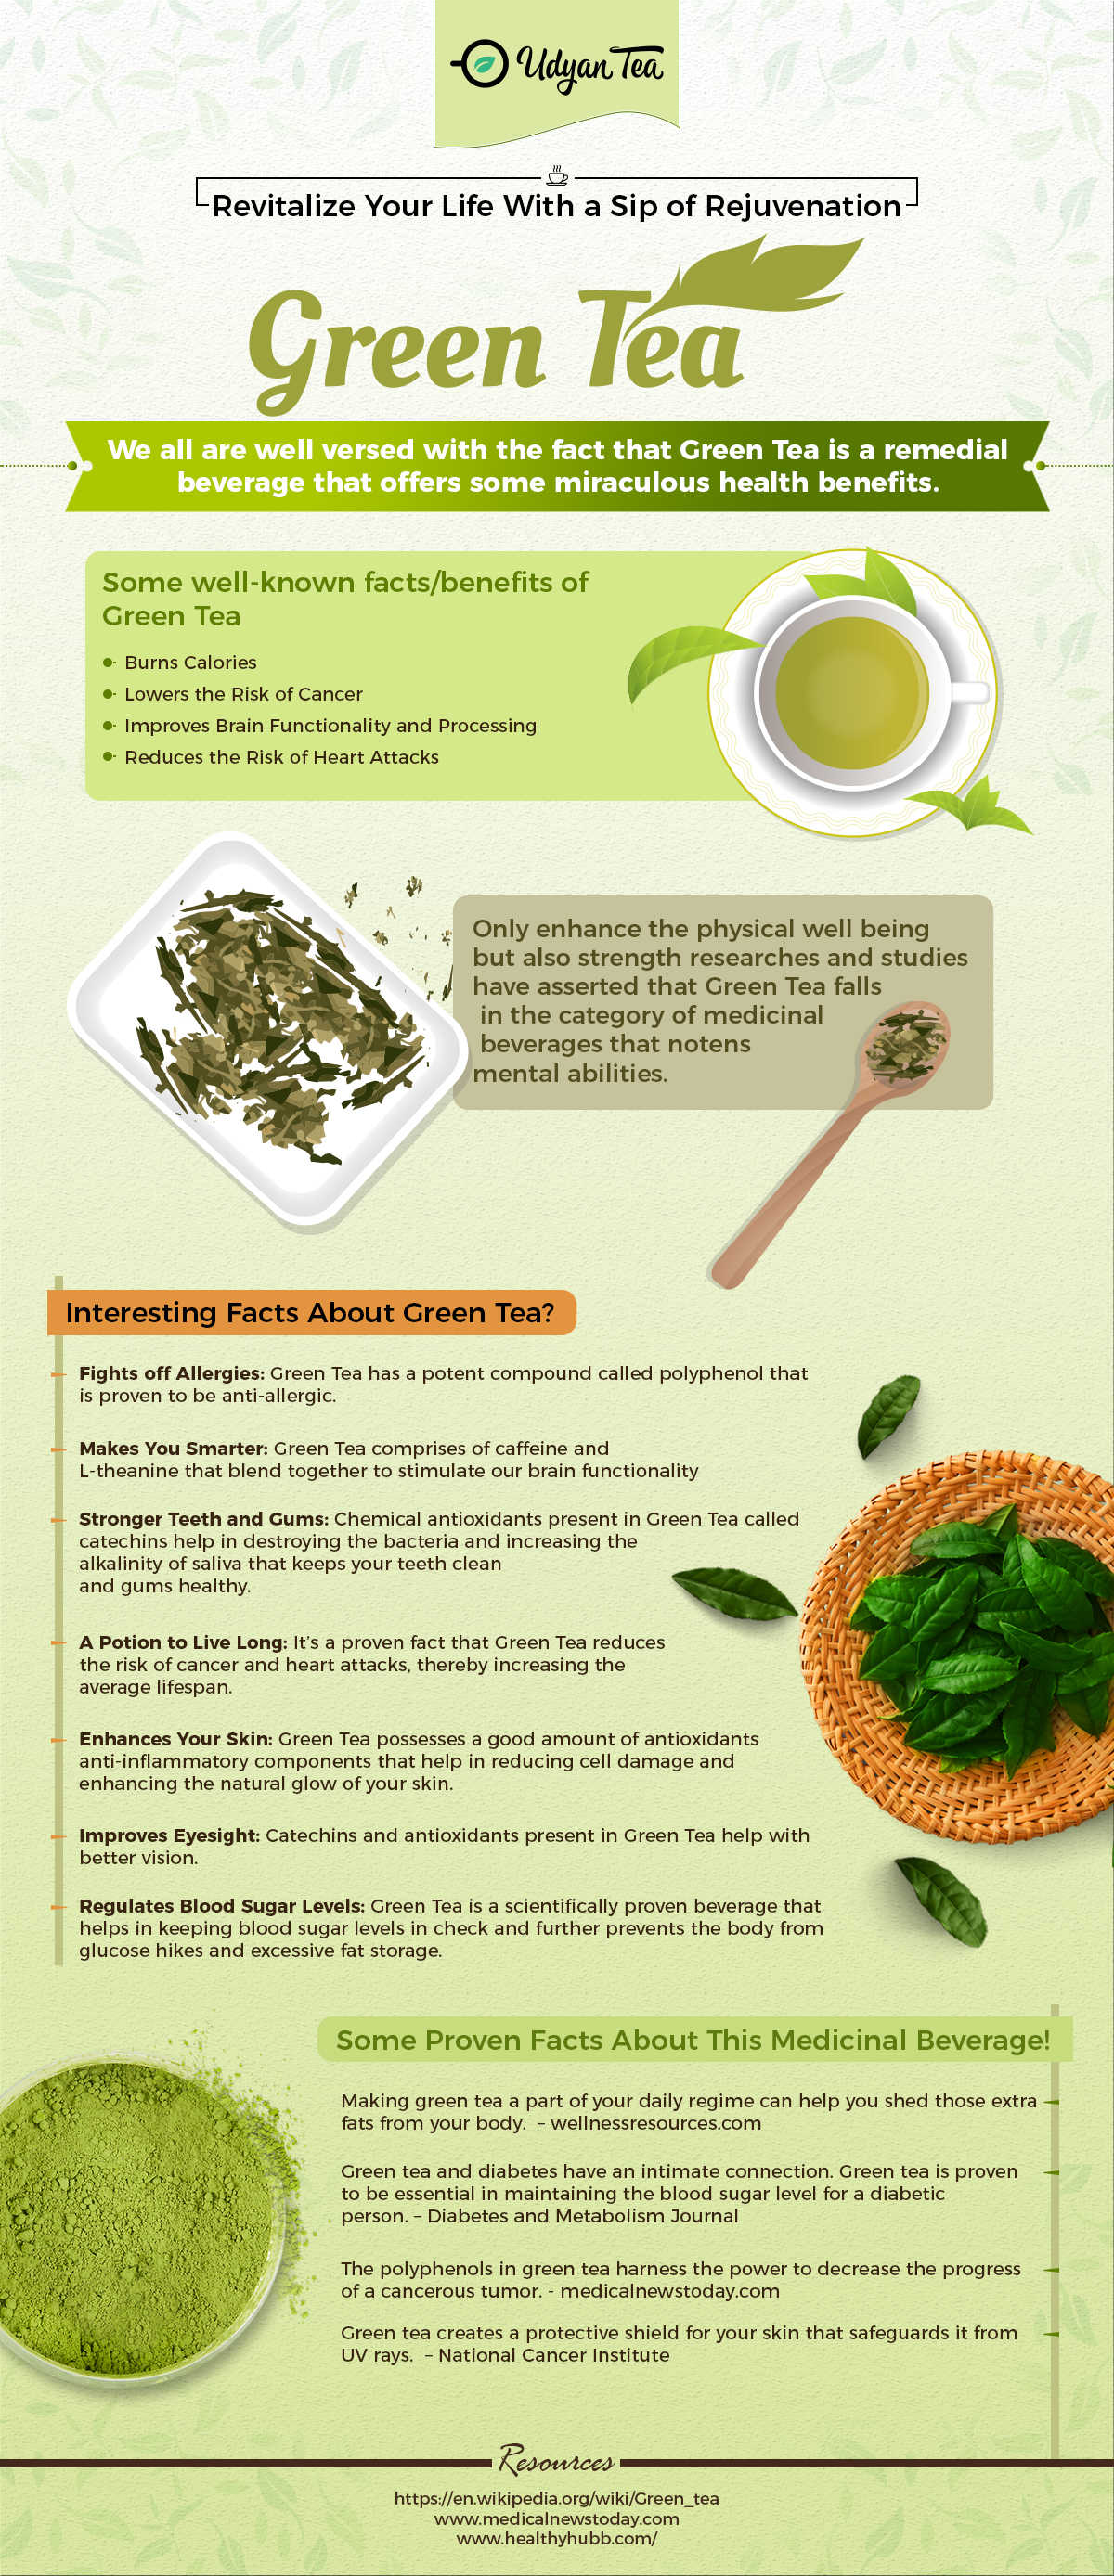 info-graphic-green-tea-latestworldtrends.com